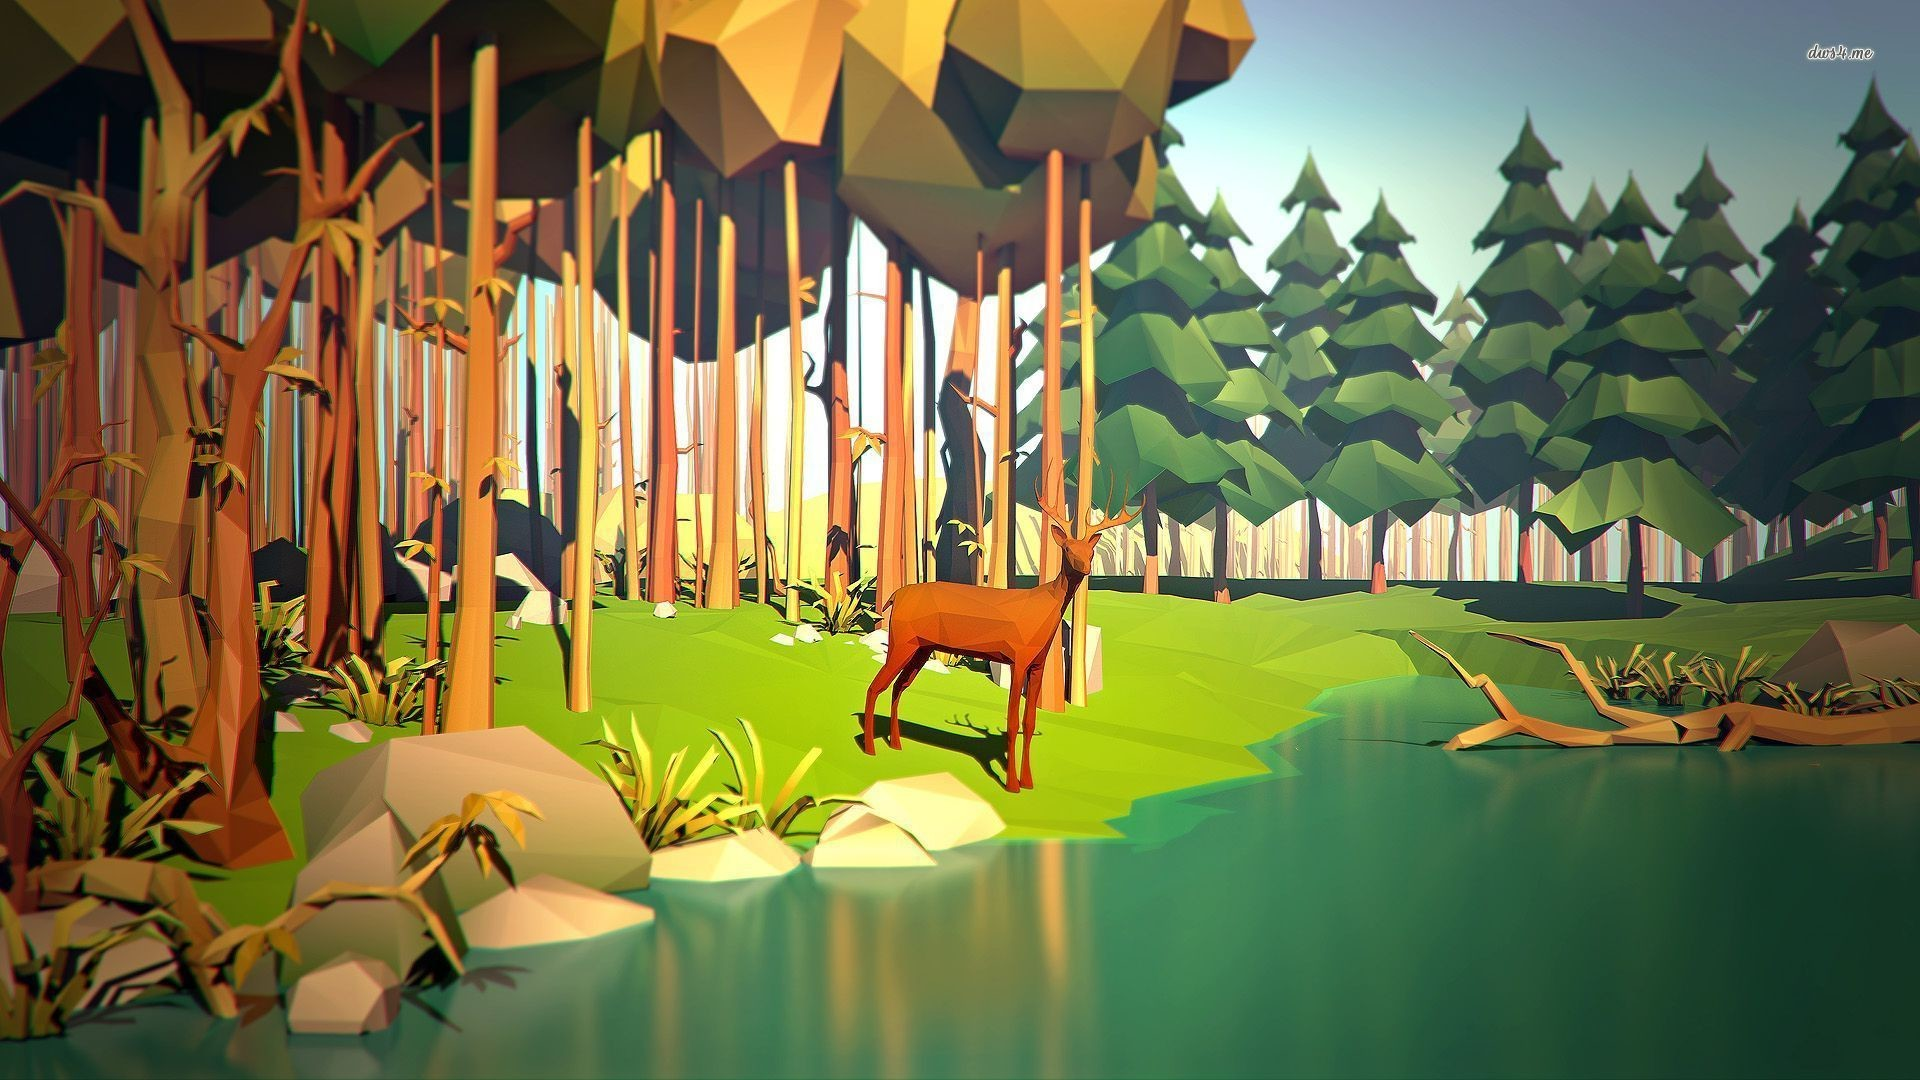 1920x1080 Polygon deer at the forest pond wallpaper